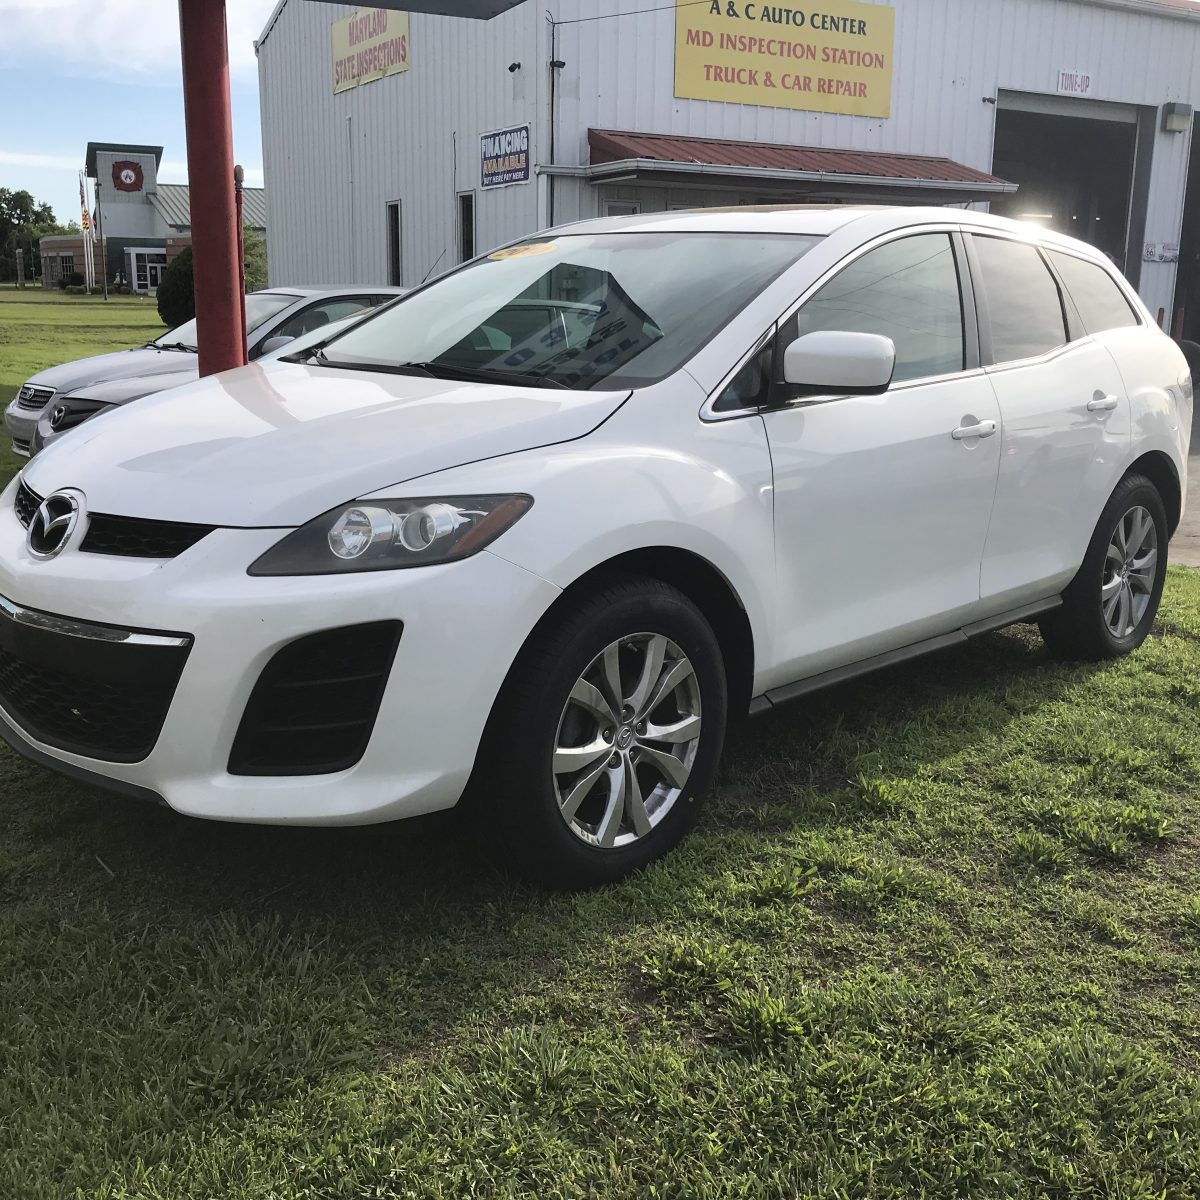 A&C Auto Center Used Car Mazda CX-7